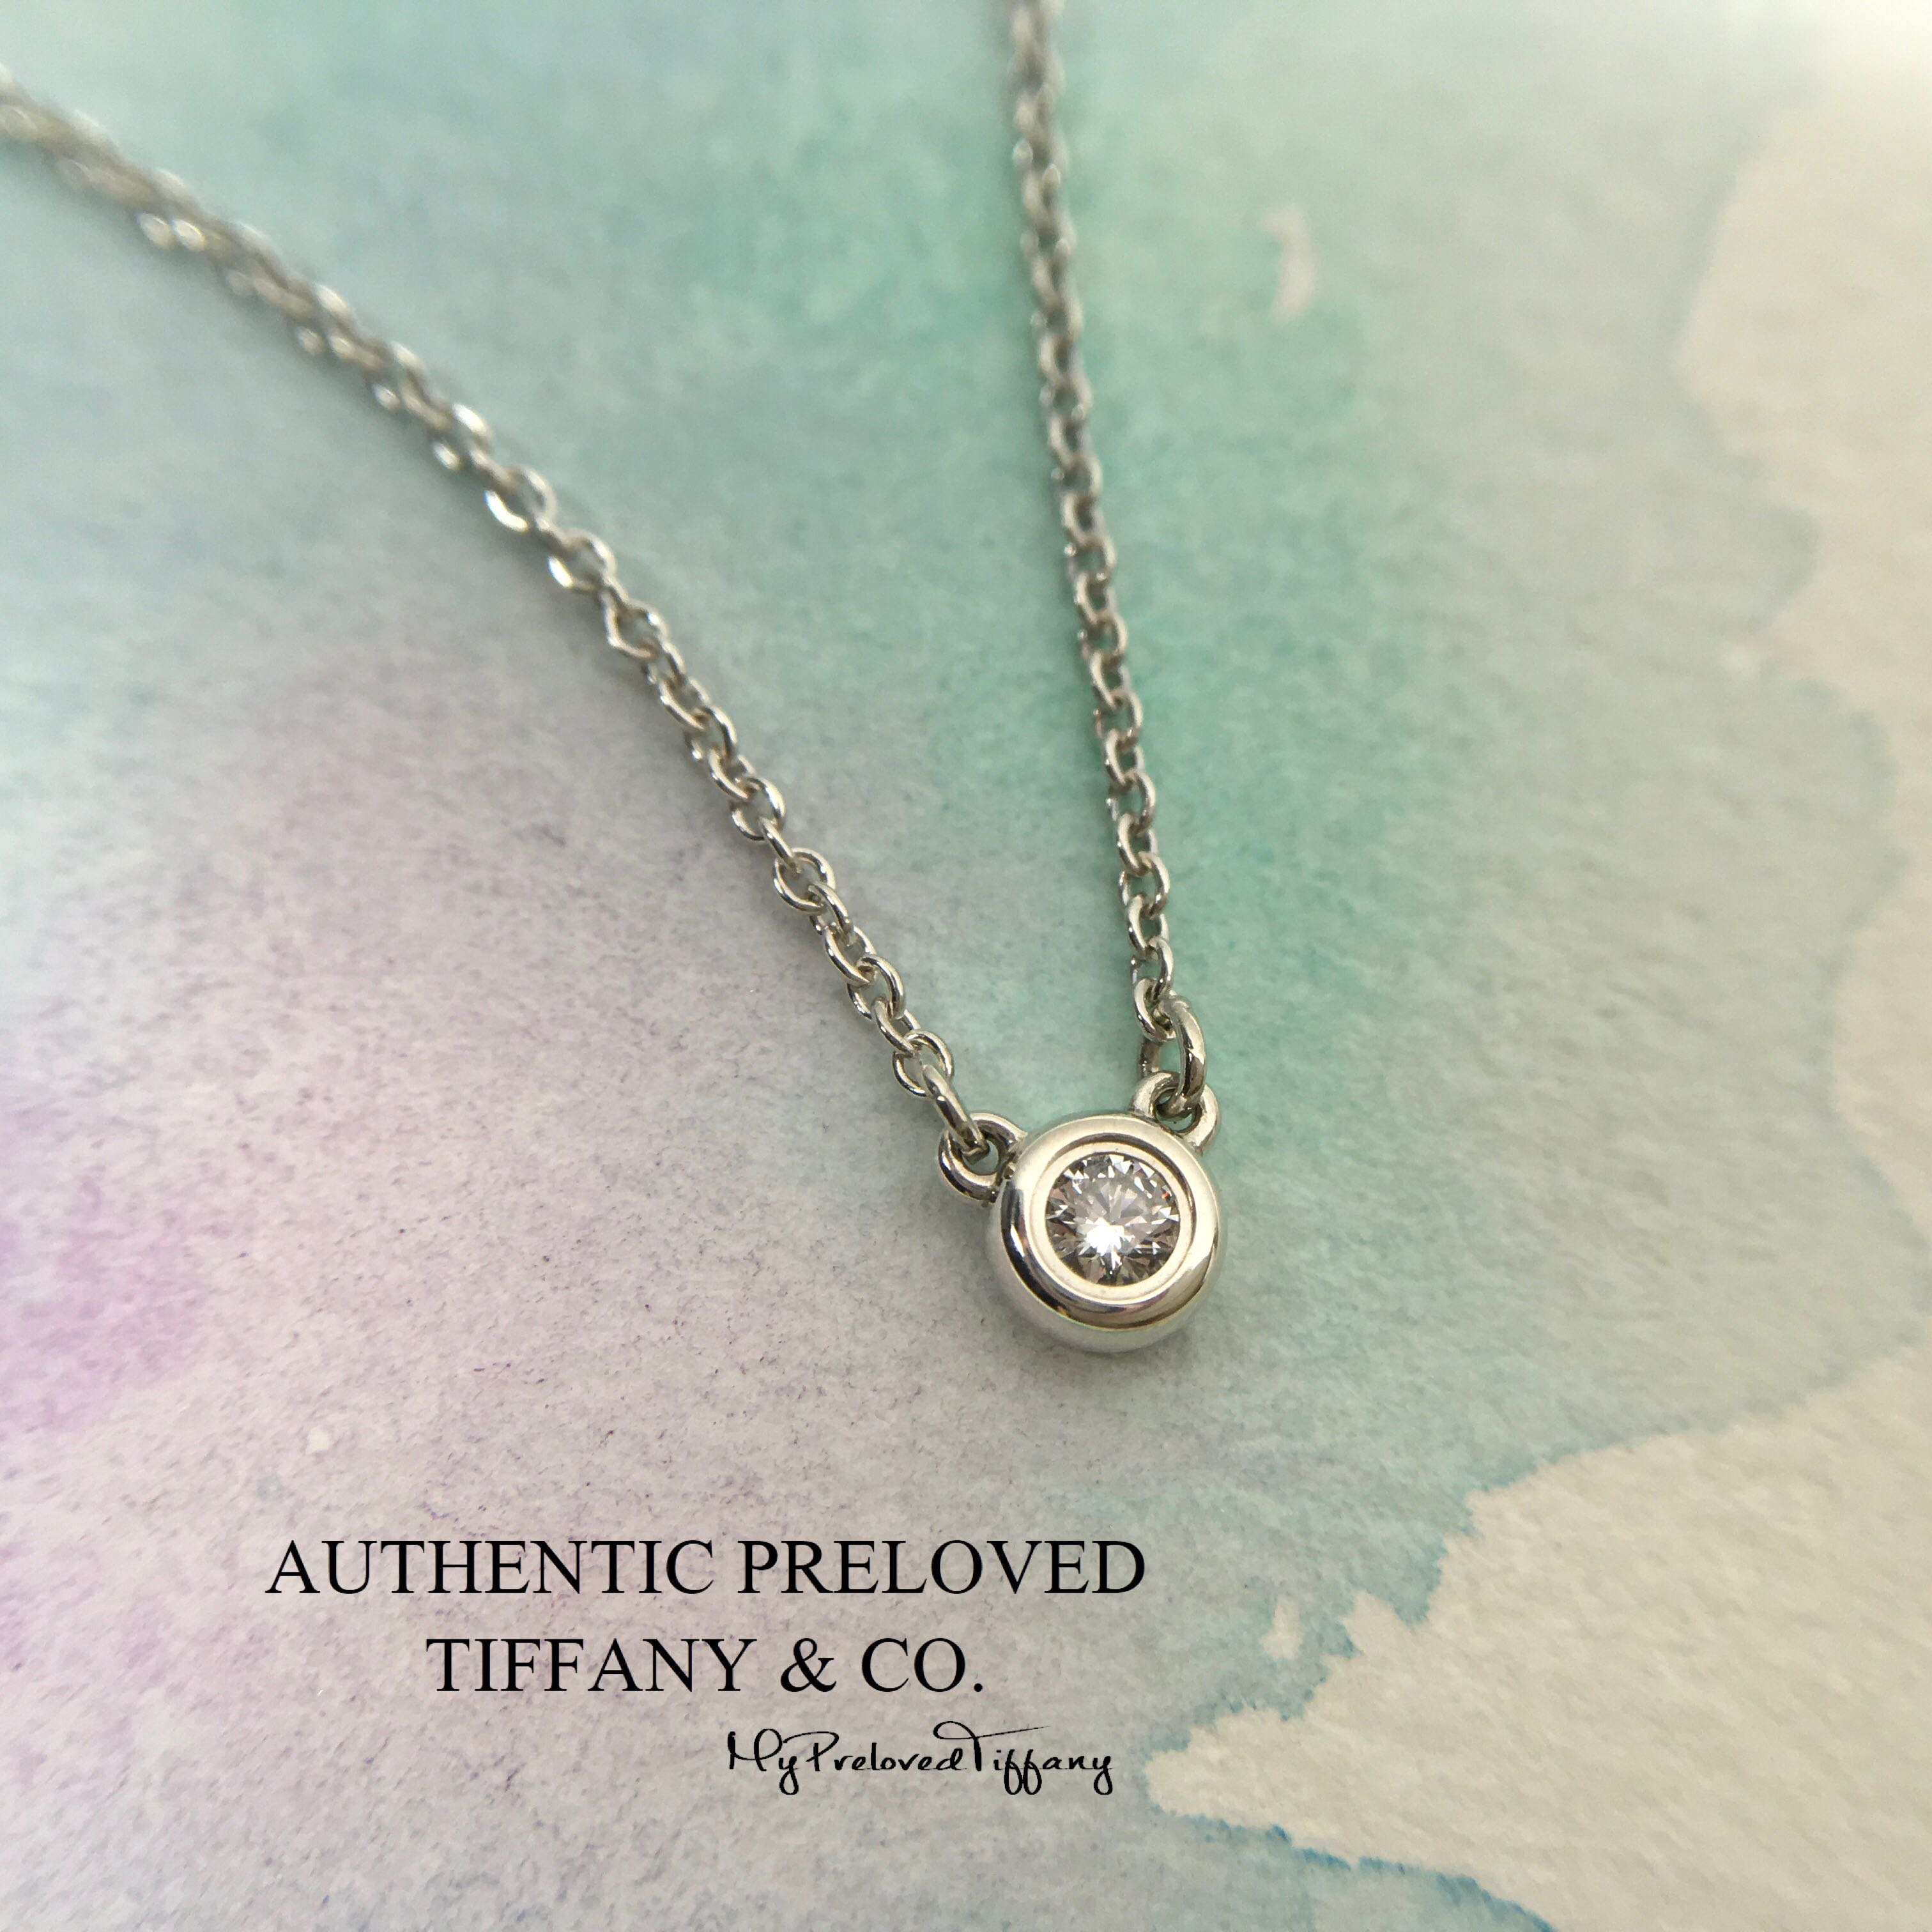 0d08a9454 Tiffany & Co. Elsa Peretti By The Yard Necklace Diamond 0.05 Carat Silver,  Women's Fashion, Jewellery on Carousell